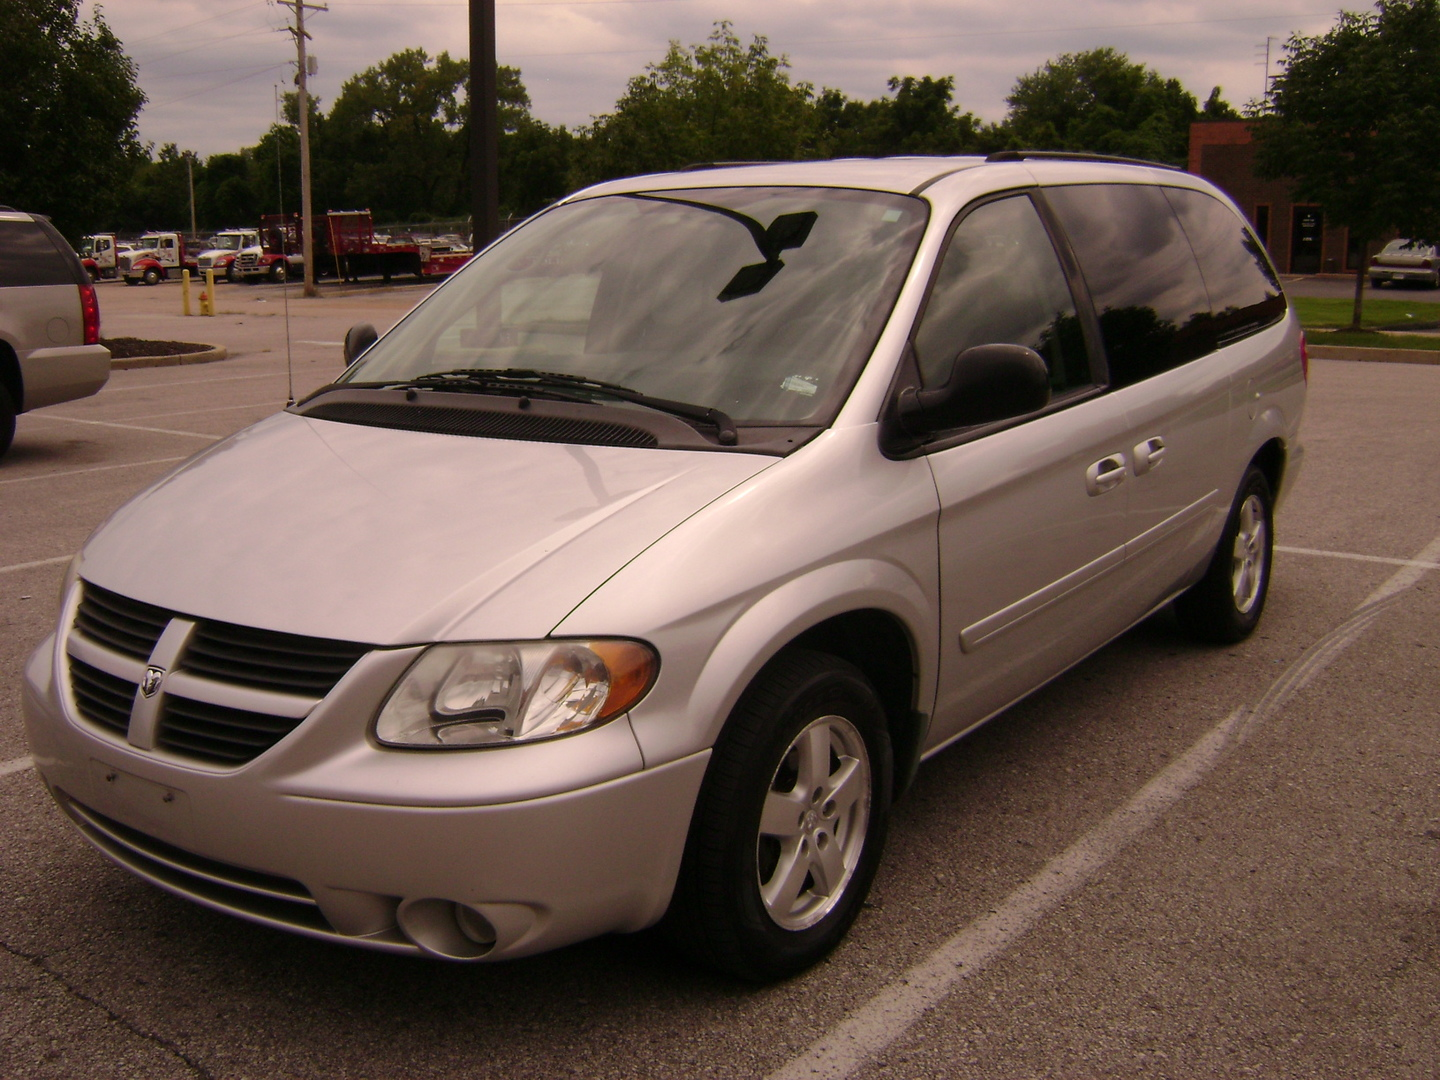 buy 2007 dodge grand caravan florissant mo hart. Black Bedroom Furniture Sets. Home Design Ideas